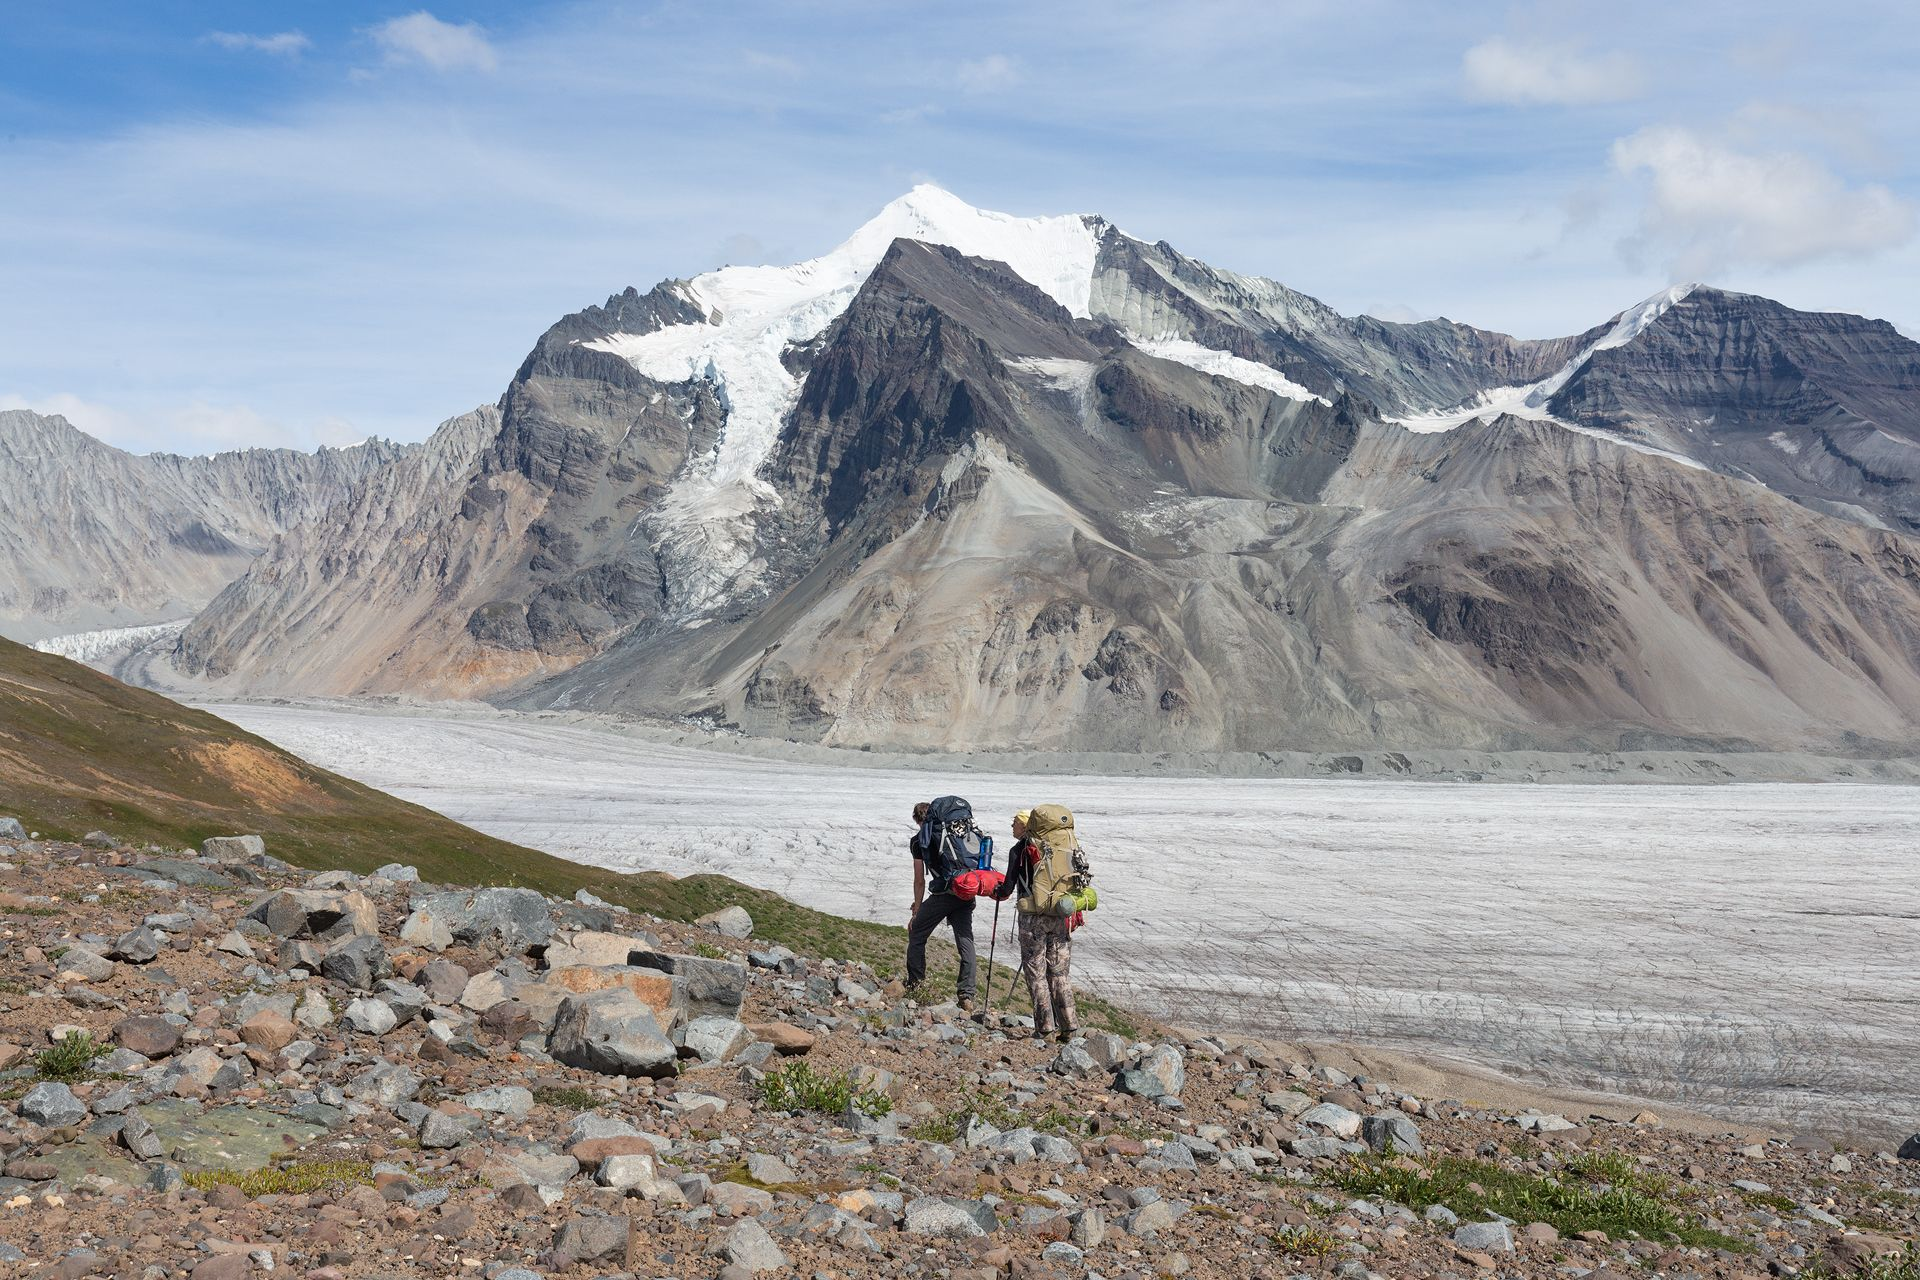 backpacking through wrangell-st. elias national park the largest